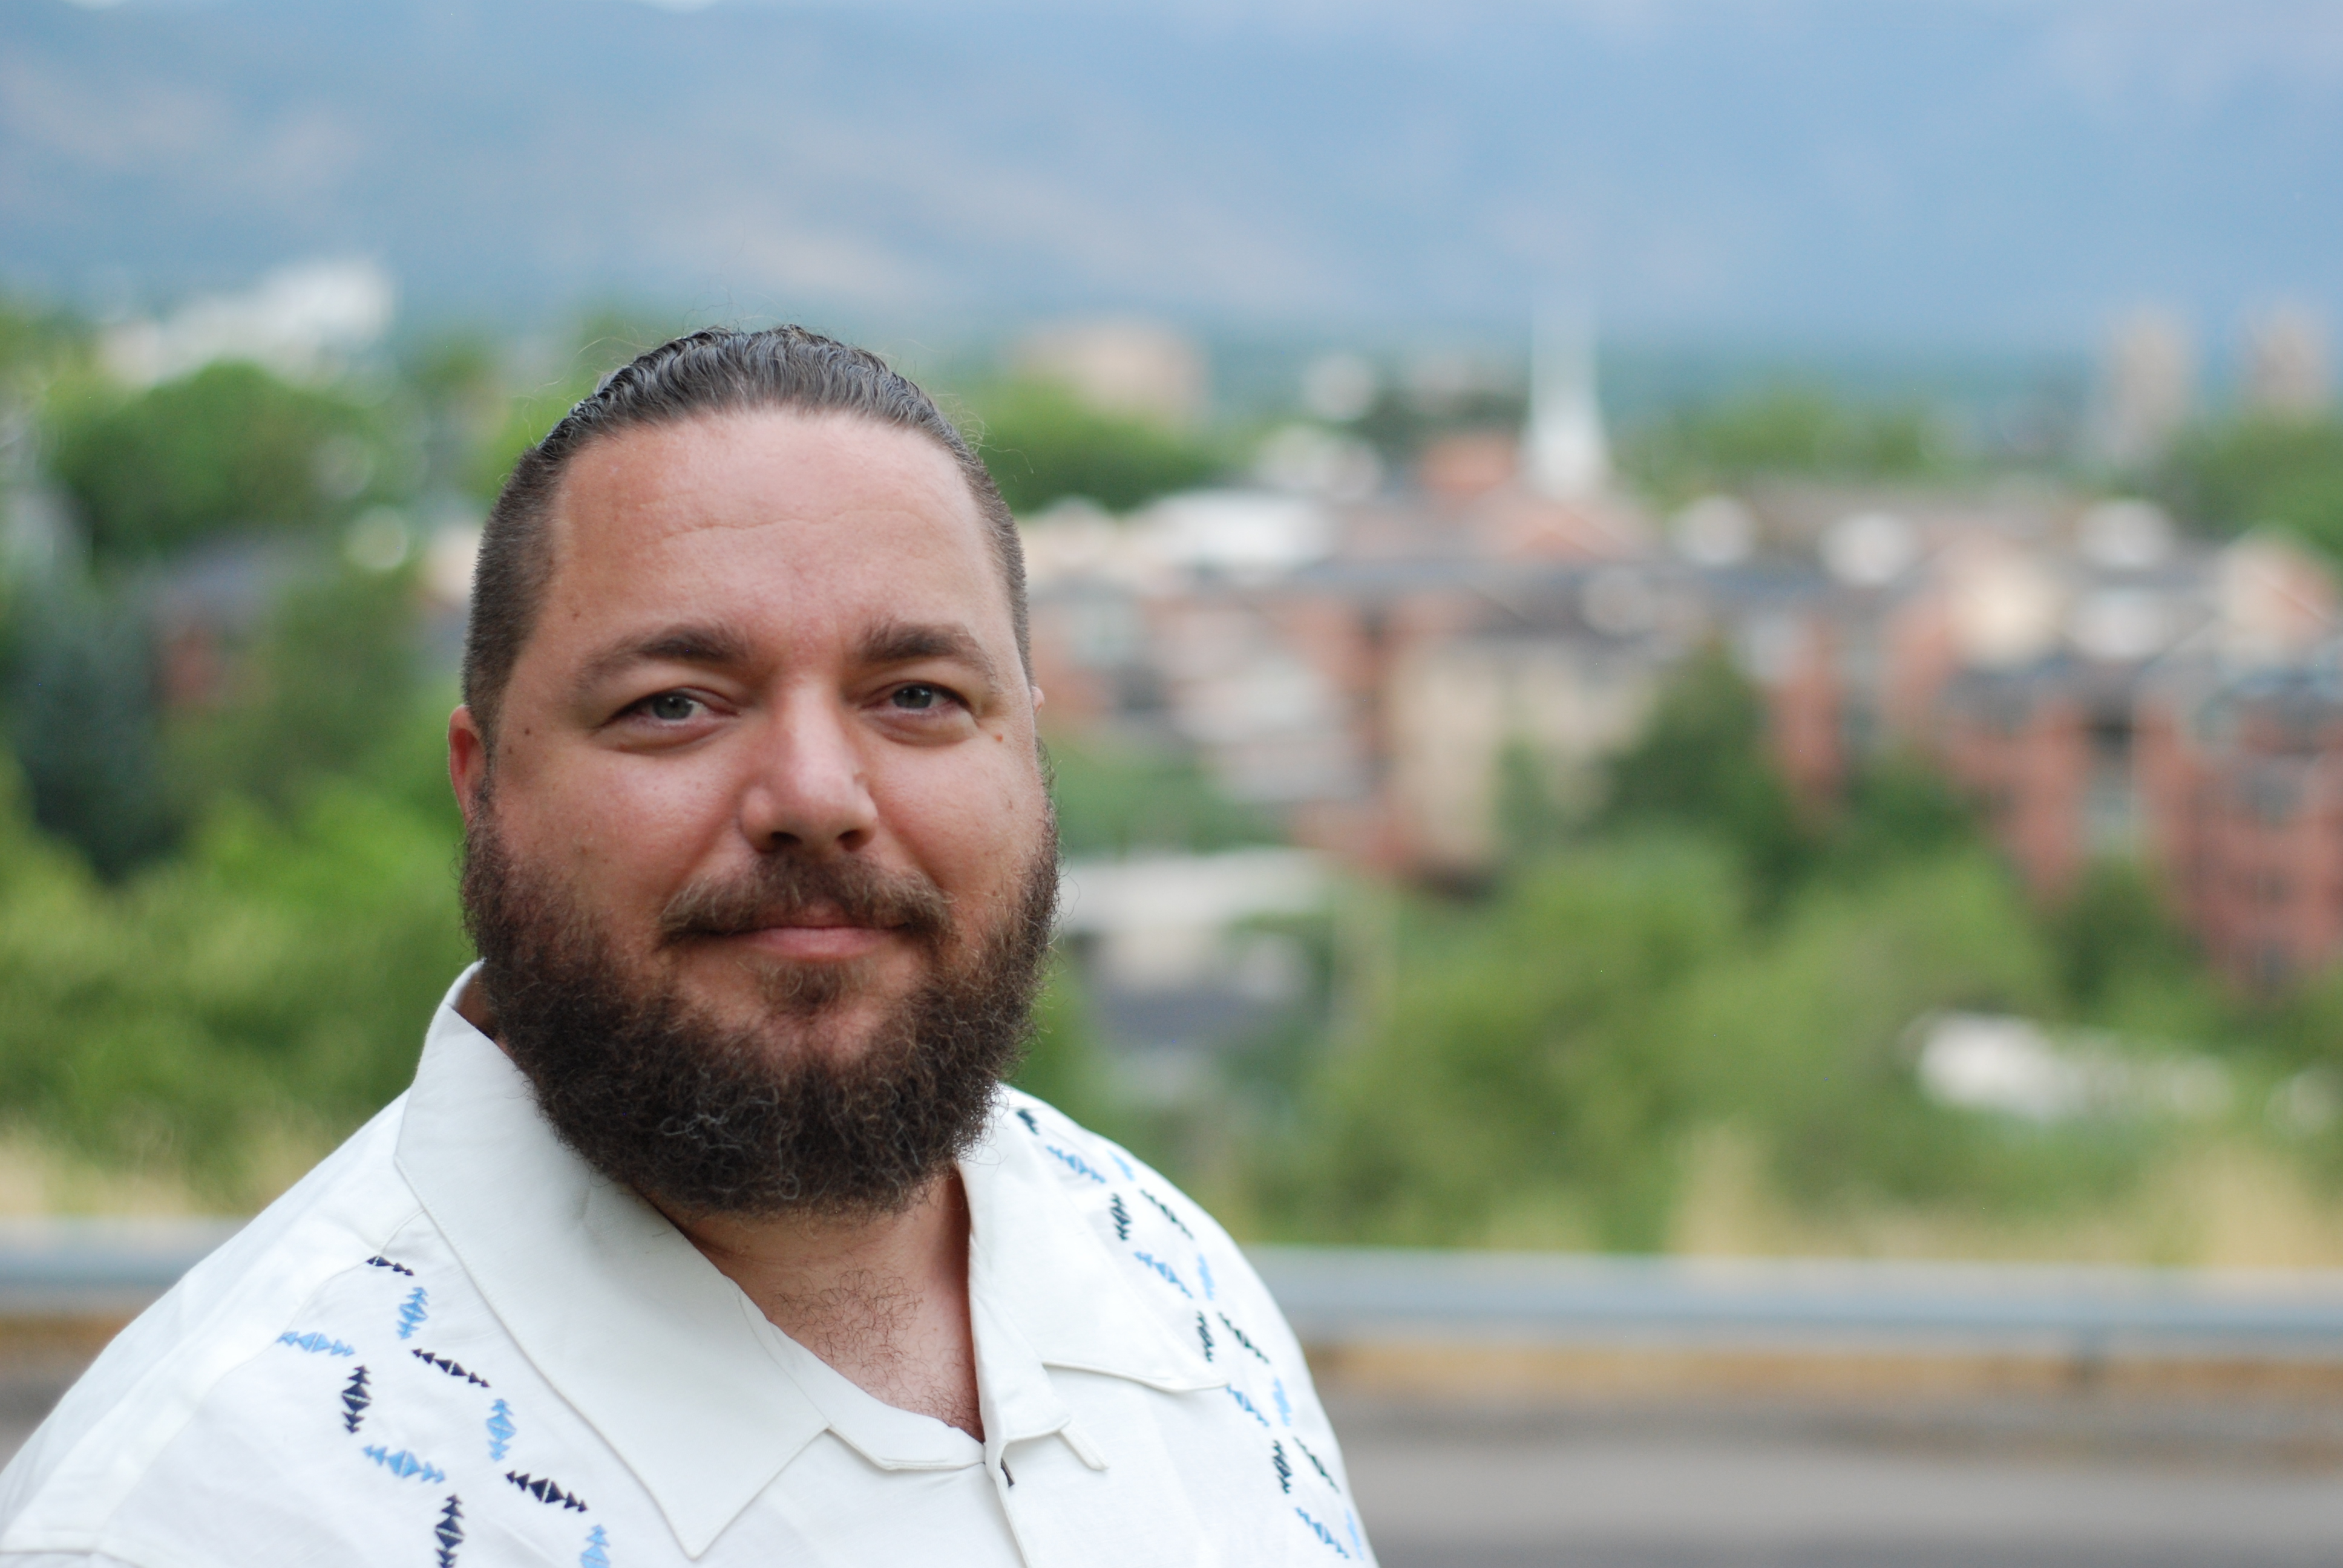 Jeff Garbett is running for Salt Lake City Council in District 3 in 2017.